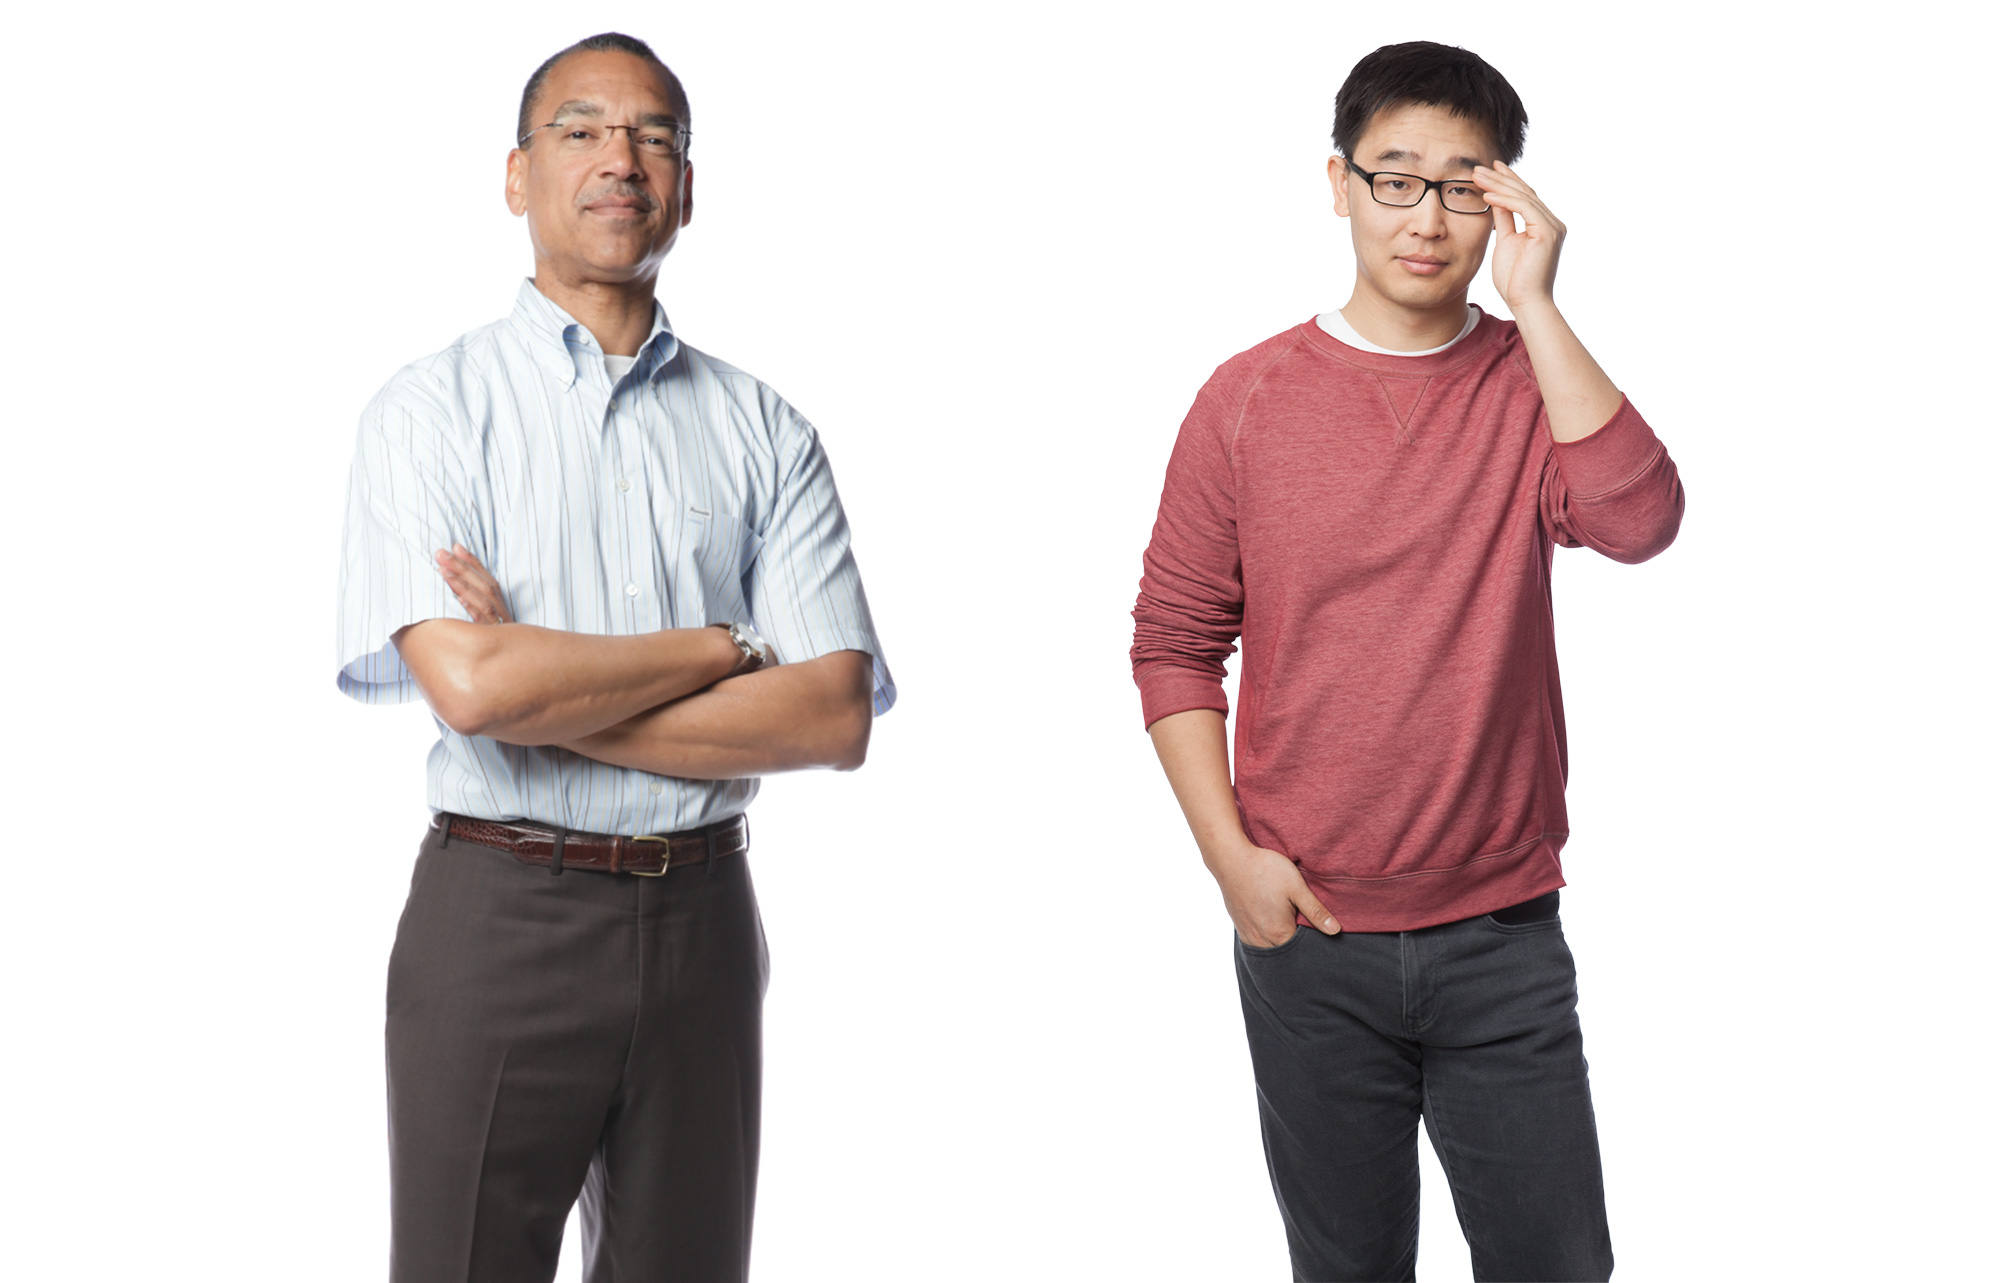 Portrait of two men. One, middle aged, looks confidently at the camera. The younger Asian man adjusts his glasses.